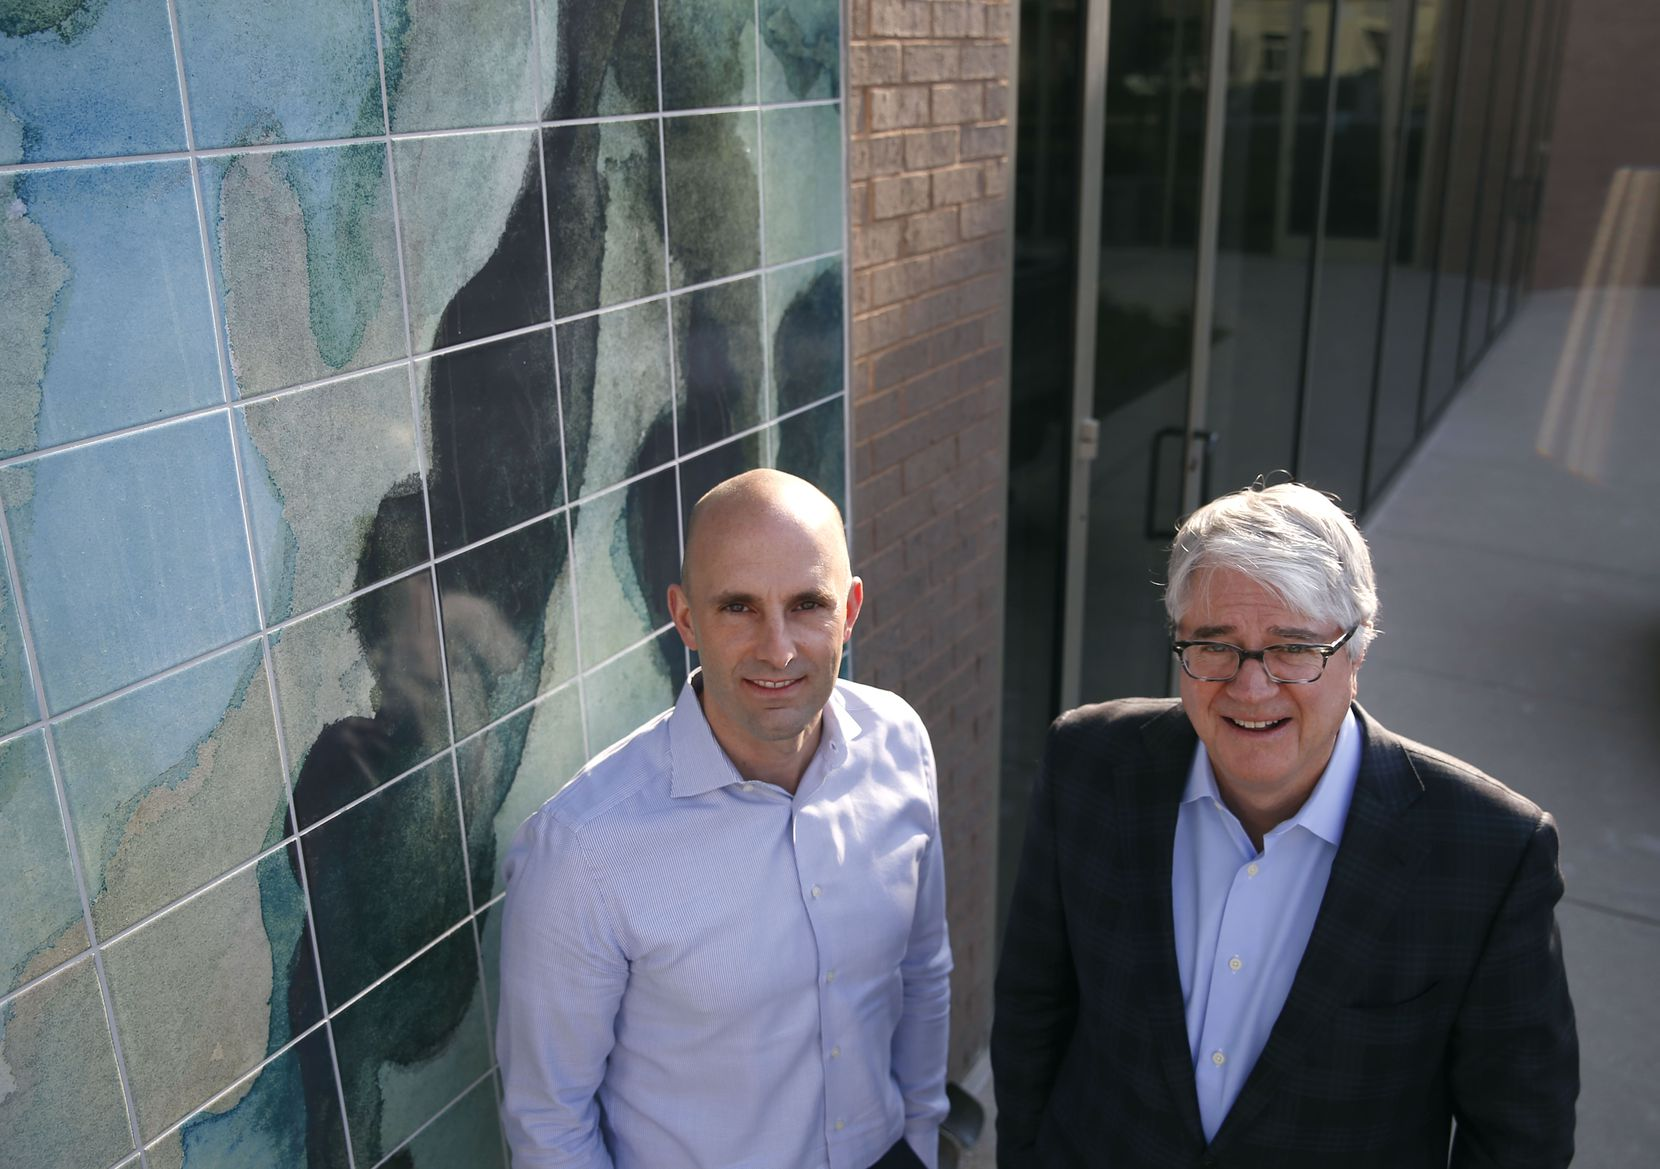 Chief operating officer Jeremy Buonamici (left) and John Sughrue, CEO of Brook Partners, pose for a portrait at River Bend in the Design District.